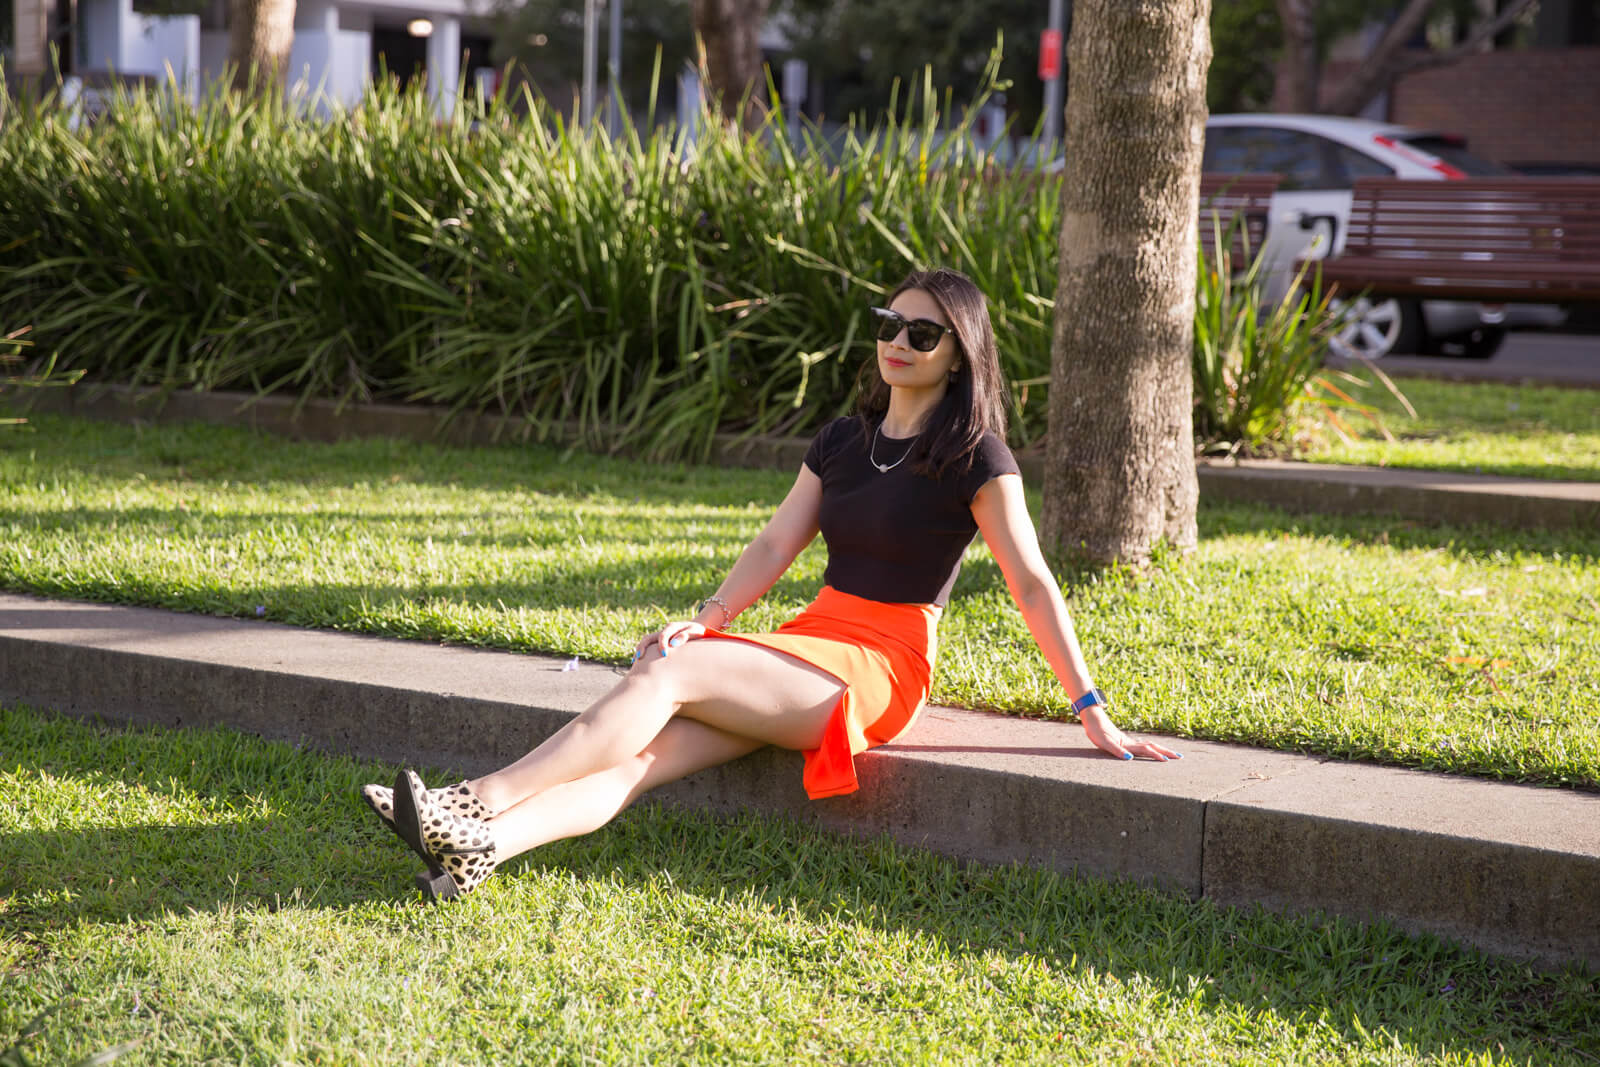 The same woman in previous photos on this page, wearing black square sunglasses on her face. She is wearing a black short sleeved t-shirt and a bright orange skirt. She is sitting on a stone step in a grassy park and has her arm extended behind her and her palm on the ground for support.